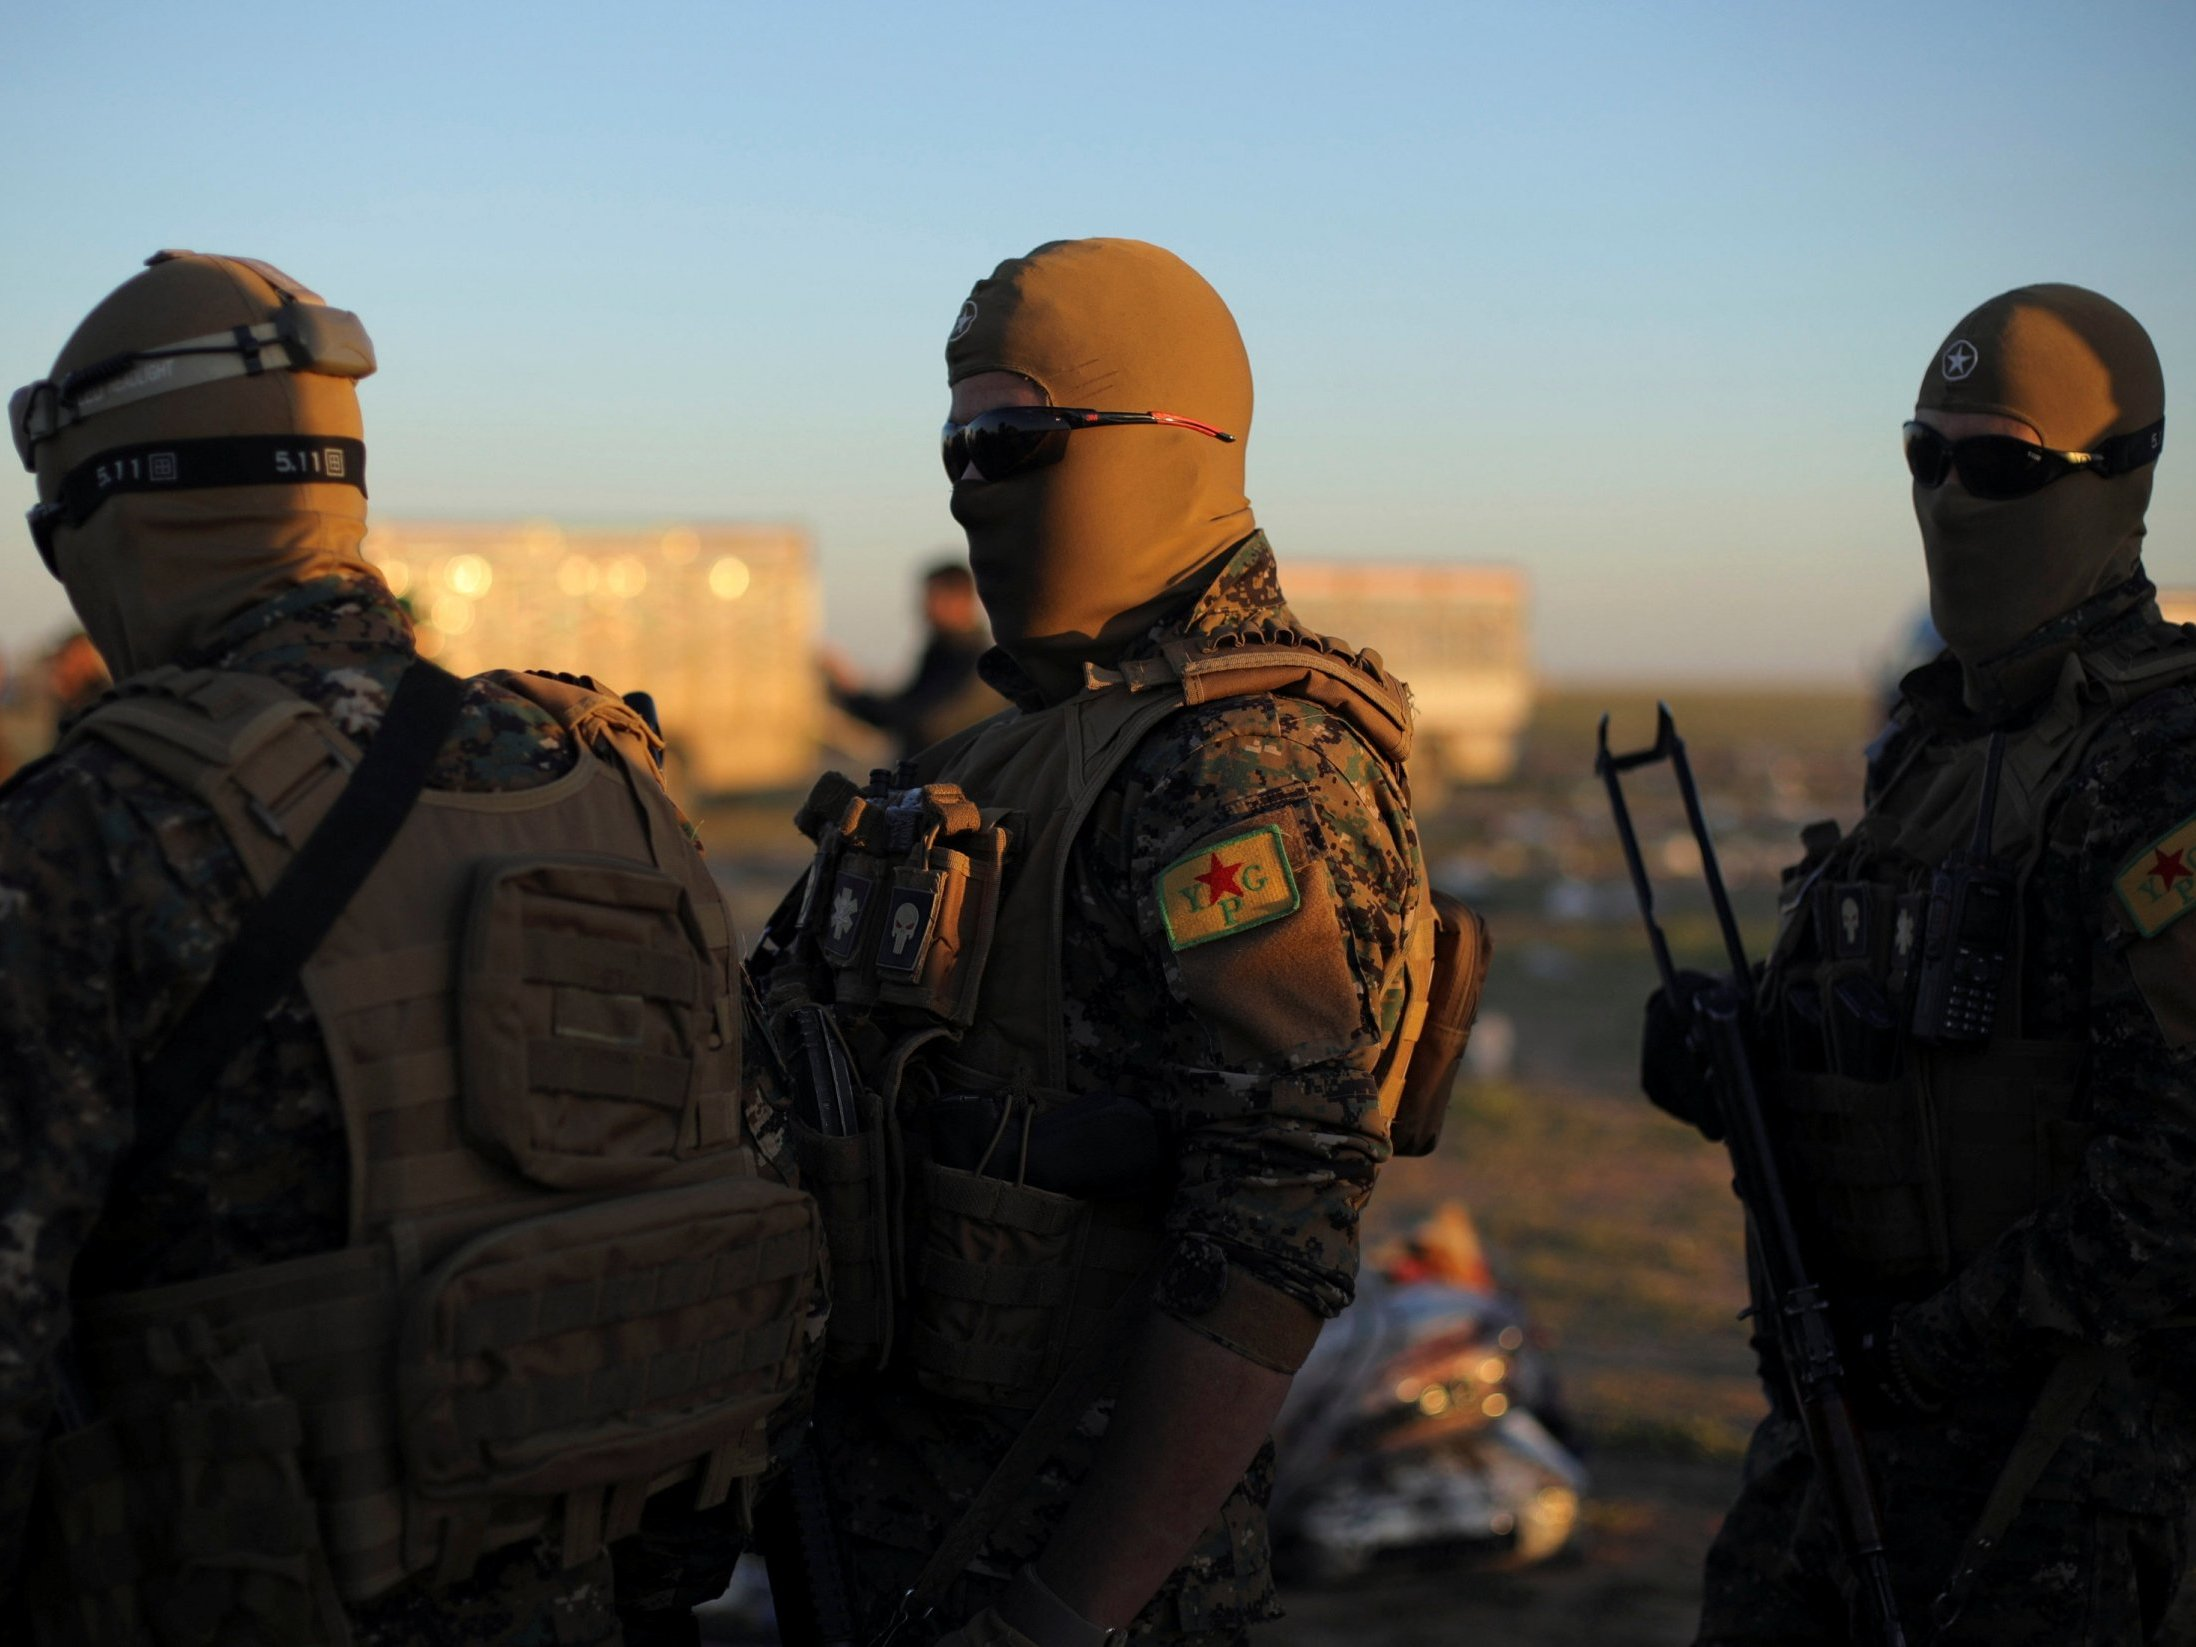 SDF forces target an ISIS enclave as it seeks to permanently